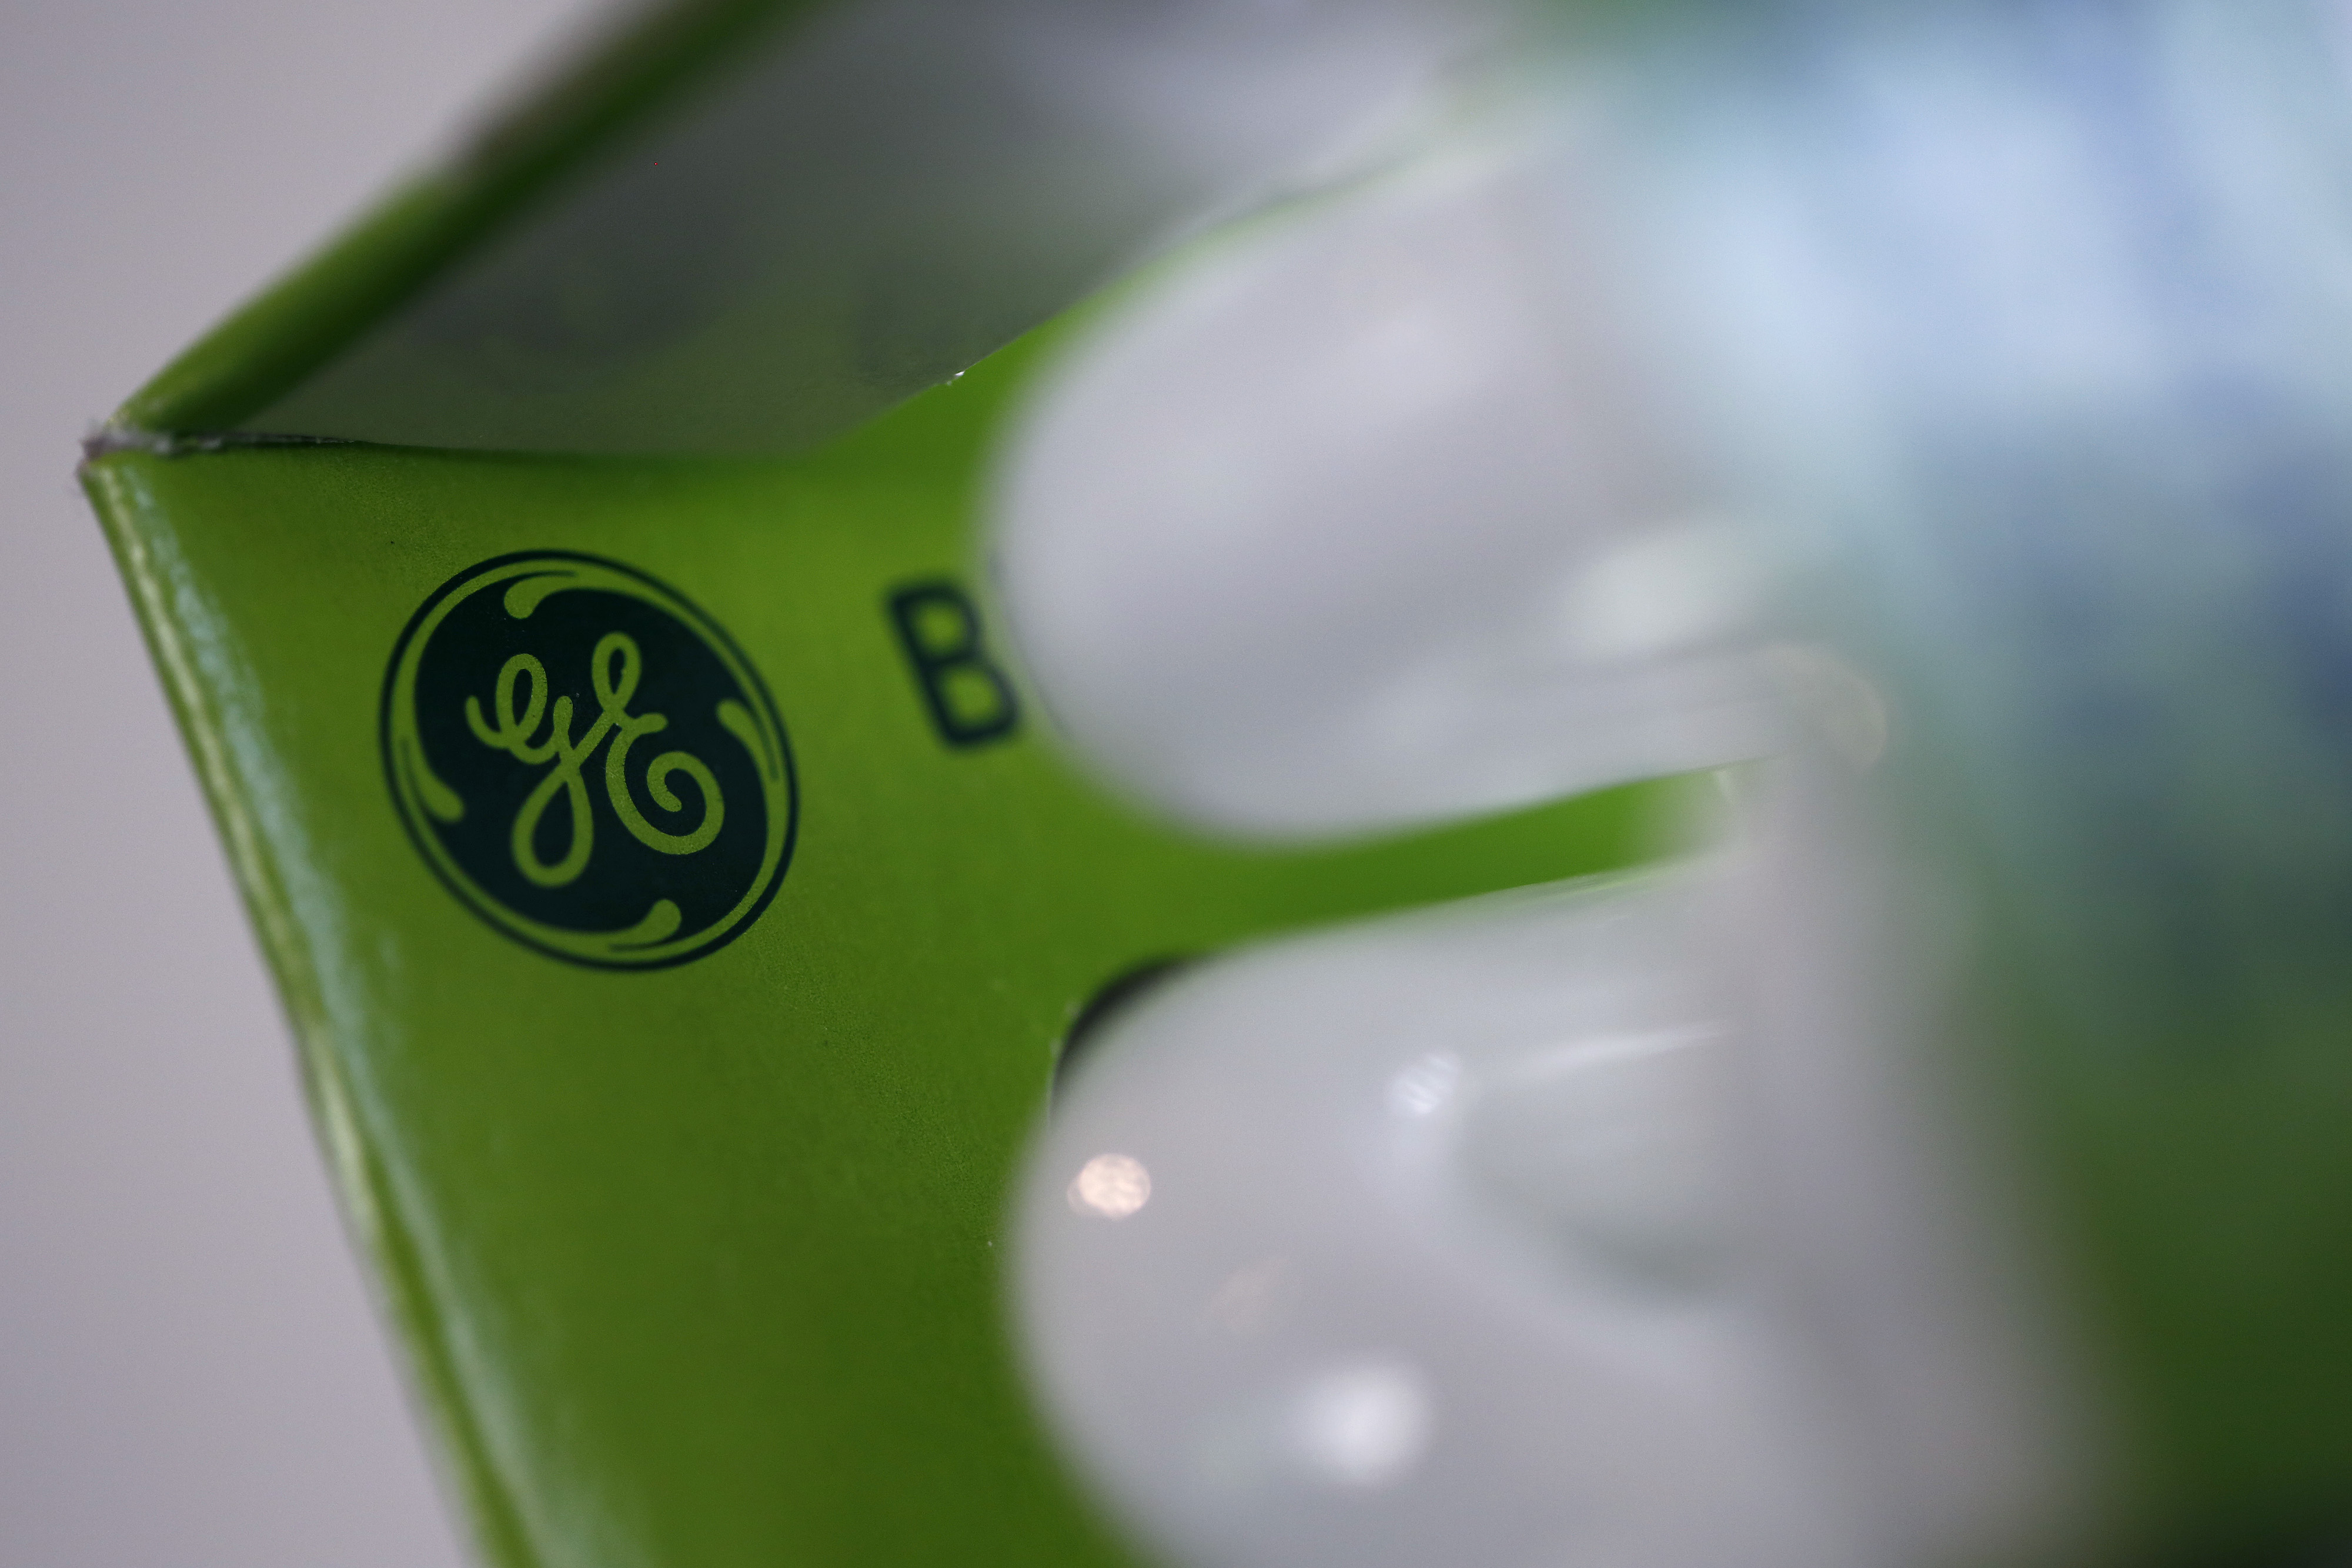 General Electric Co. Branded Light Bulbs As Manufacturer Makes $17 Billion Bid For Alstom SA's Energy Business